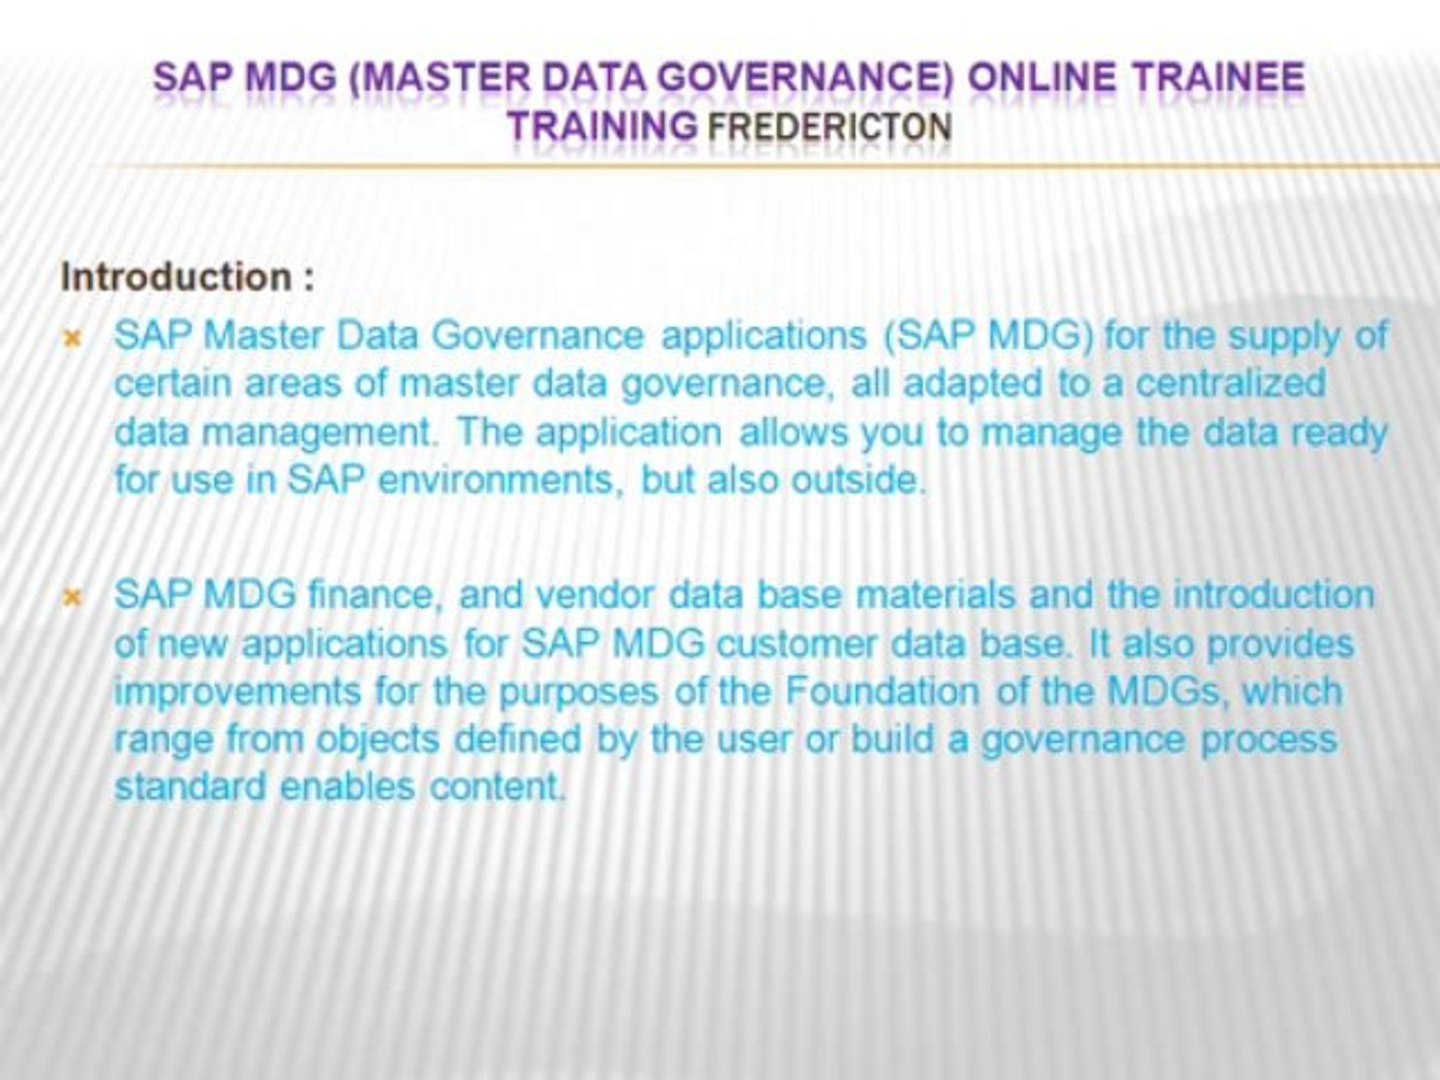 SAP MDG (master data governance) online trainee Training Fredericton